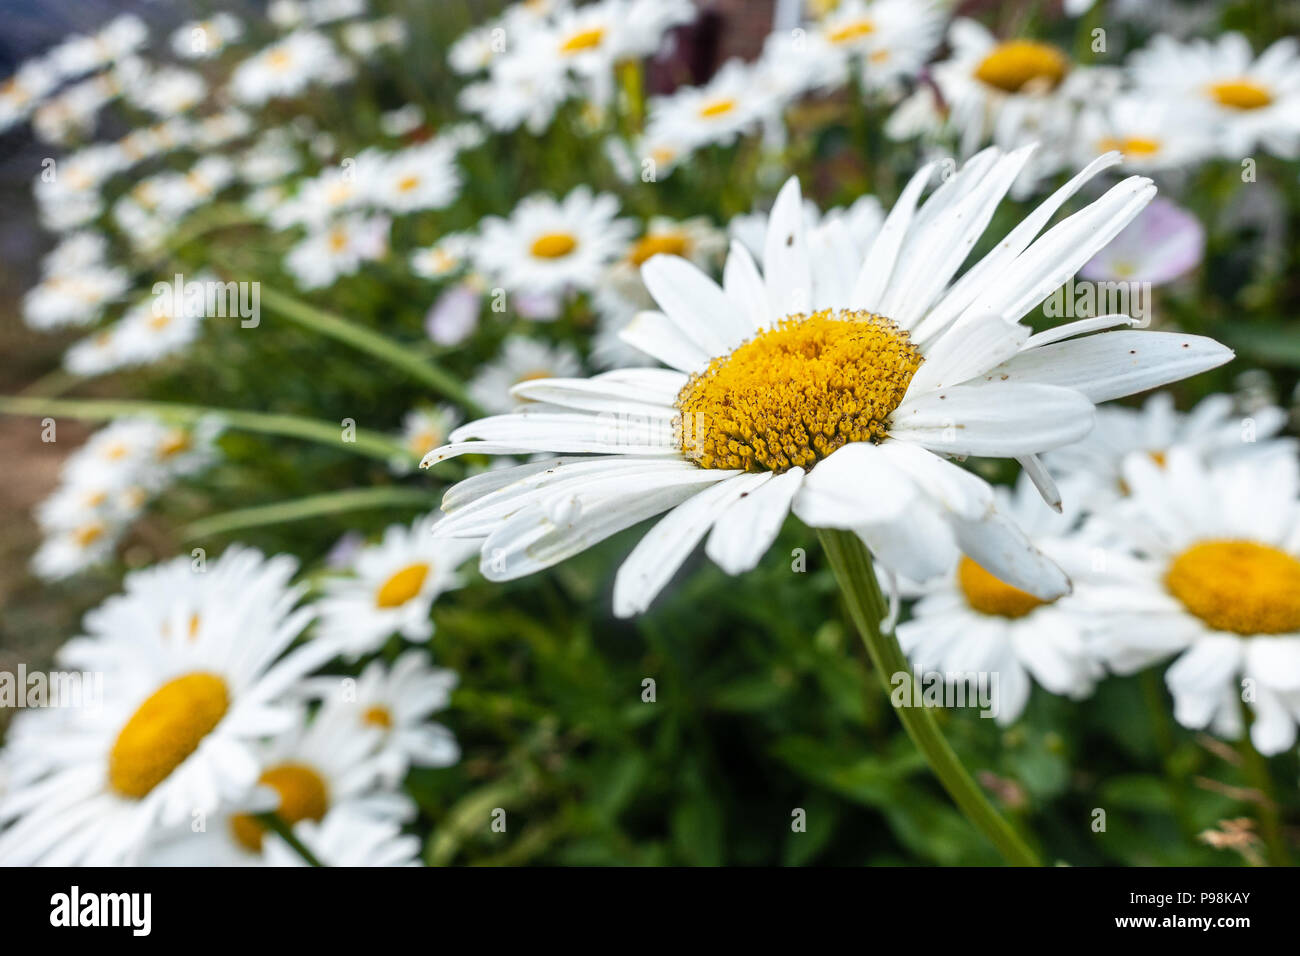 yellow-and-white-oxeye-daisy-flowers-P98KAY.jpg